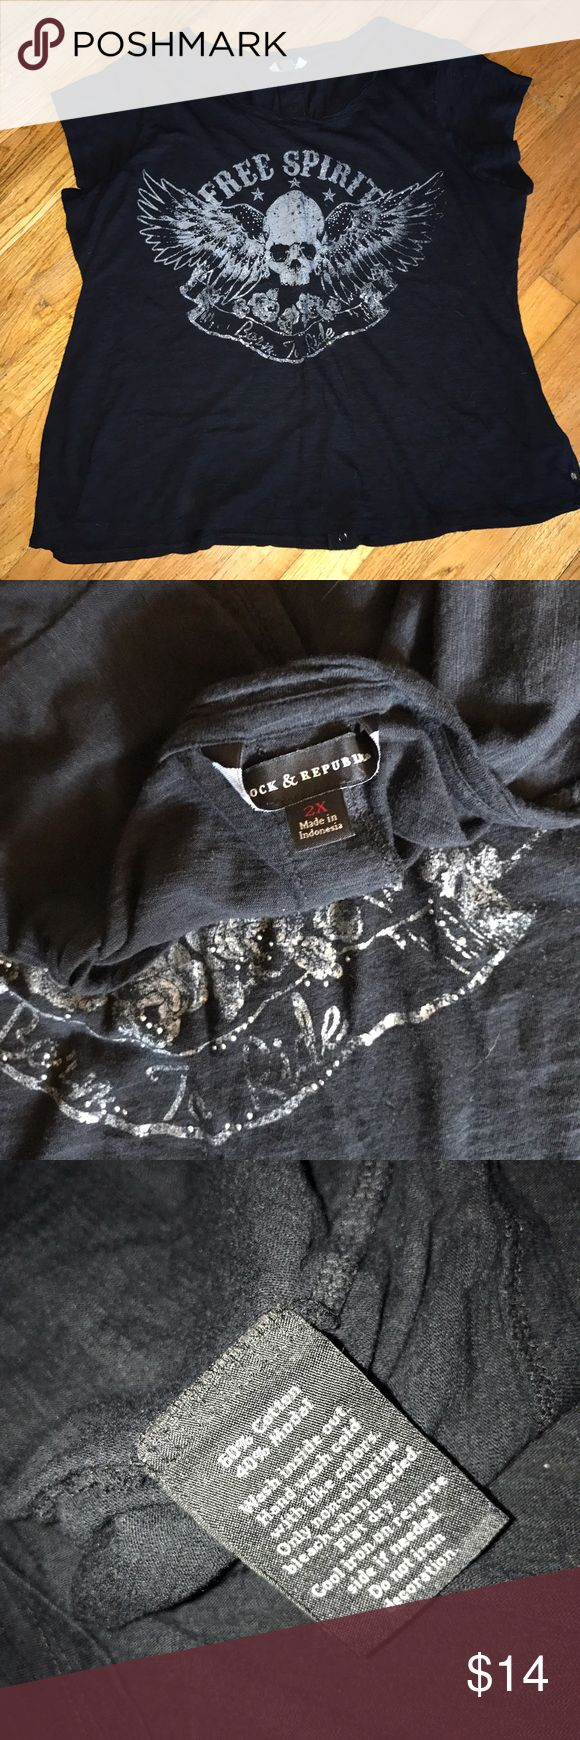 """Rock & Republic Short sleeve top size 2X Black short sleeve tee.  Snap button up back.  Skull with shimmering silver letters saying Free Spirit across top.  Very light and airy.  Armpit to armpit 23"""", length 26"""" flat.  Made by Rock & Republic.   Size 2X Rock & Republic Tops Tees - Short Sleeve"""